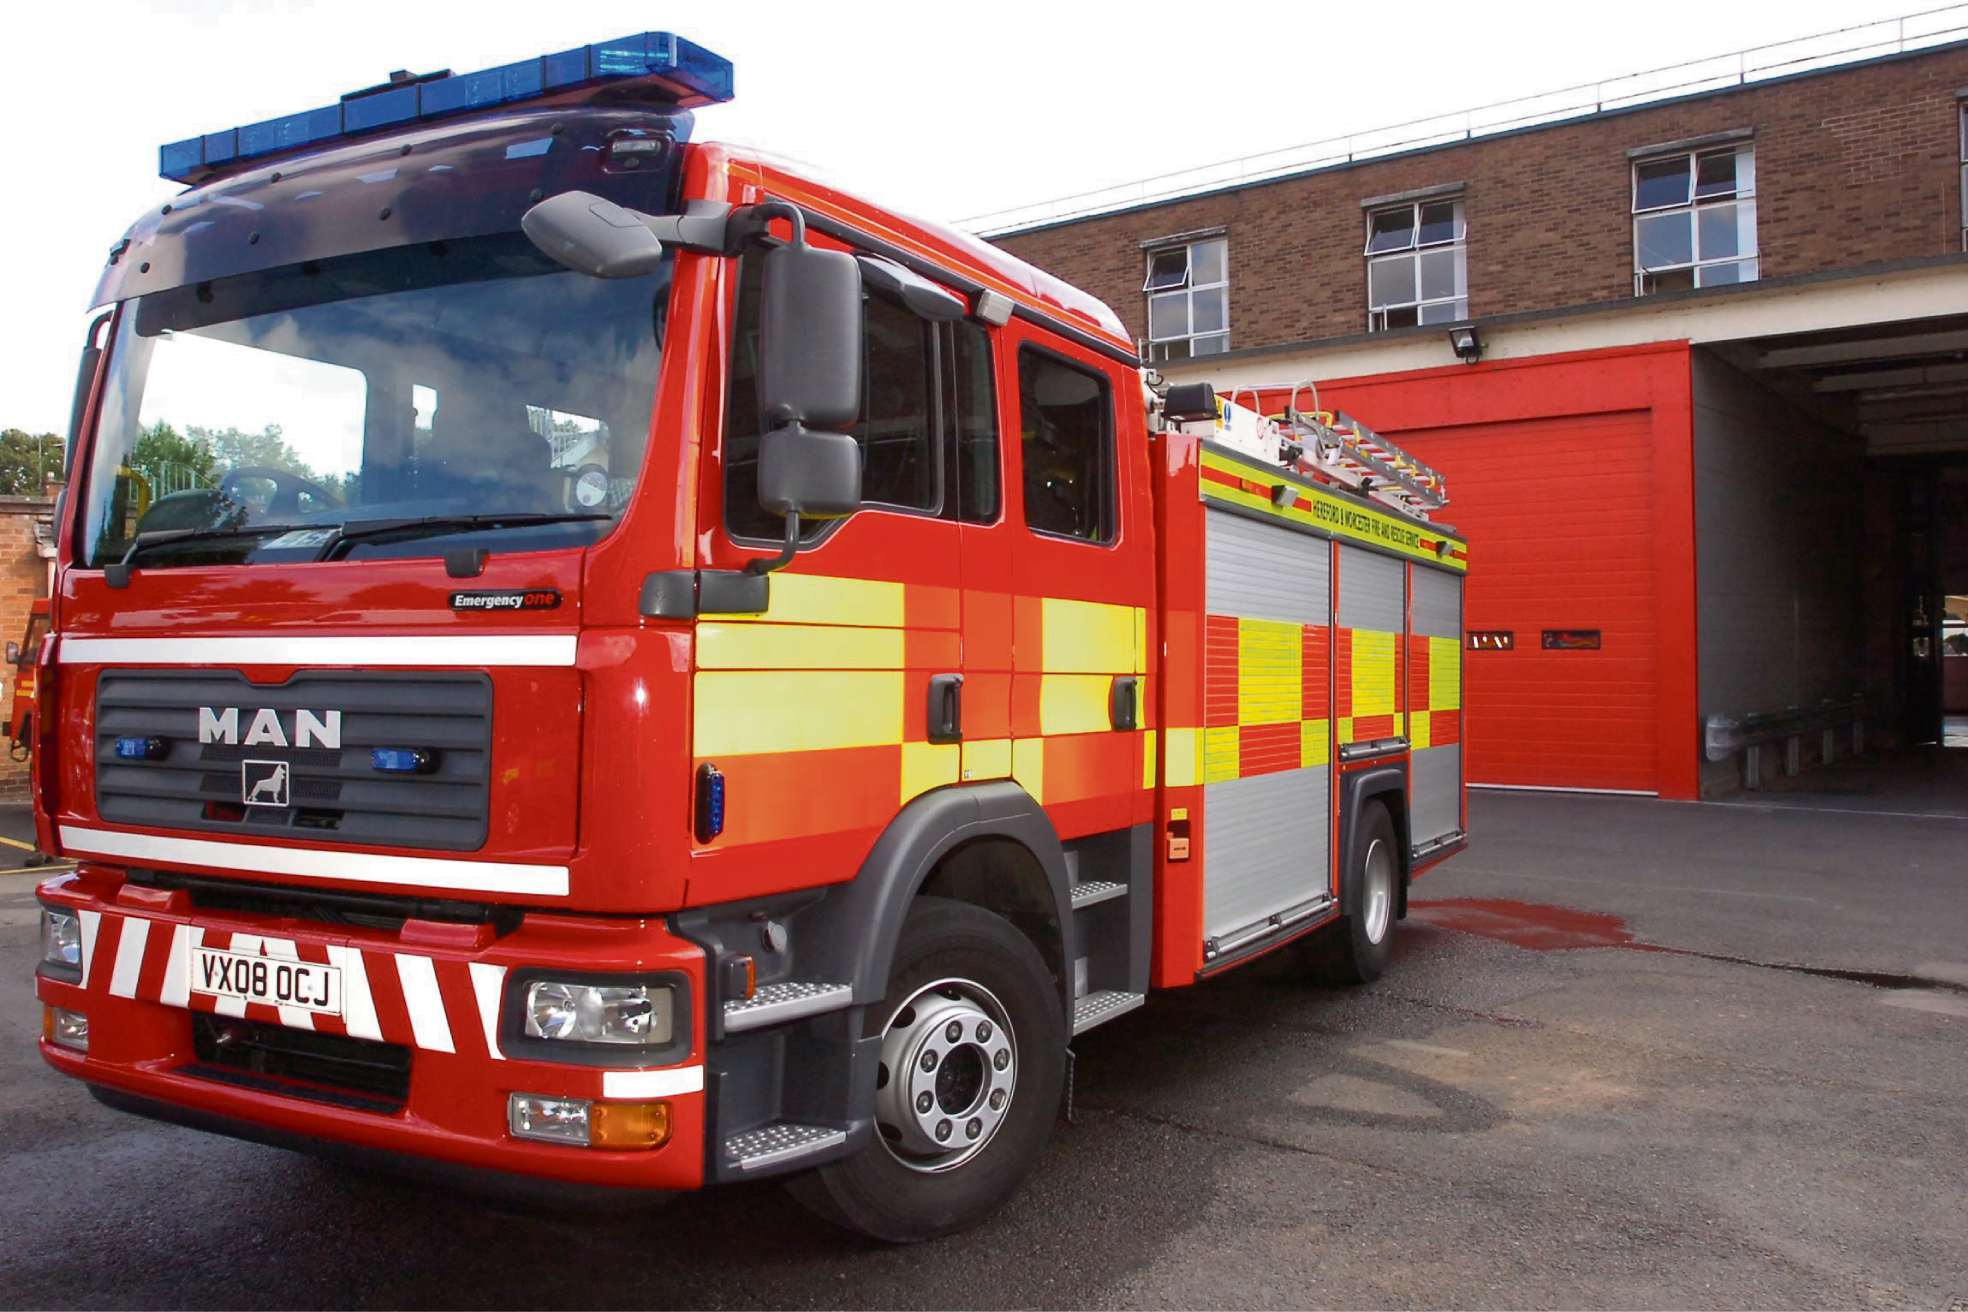 Fire crews were called to a tarmac machine which was on fire on Tuesday evening.